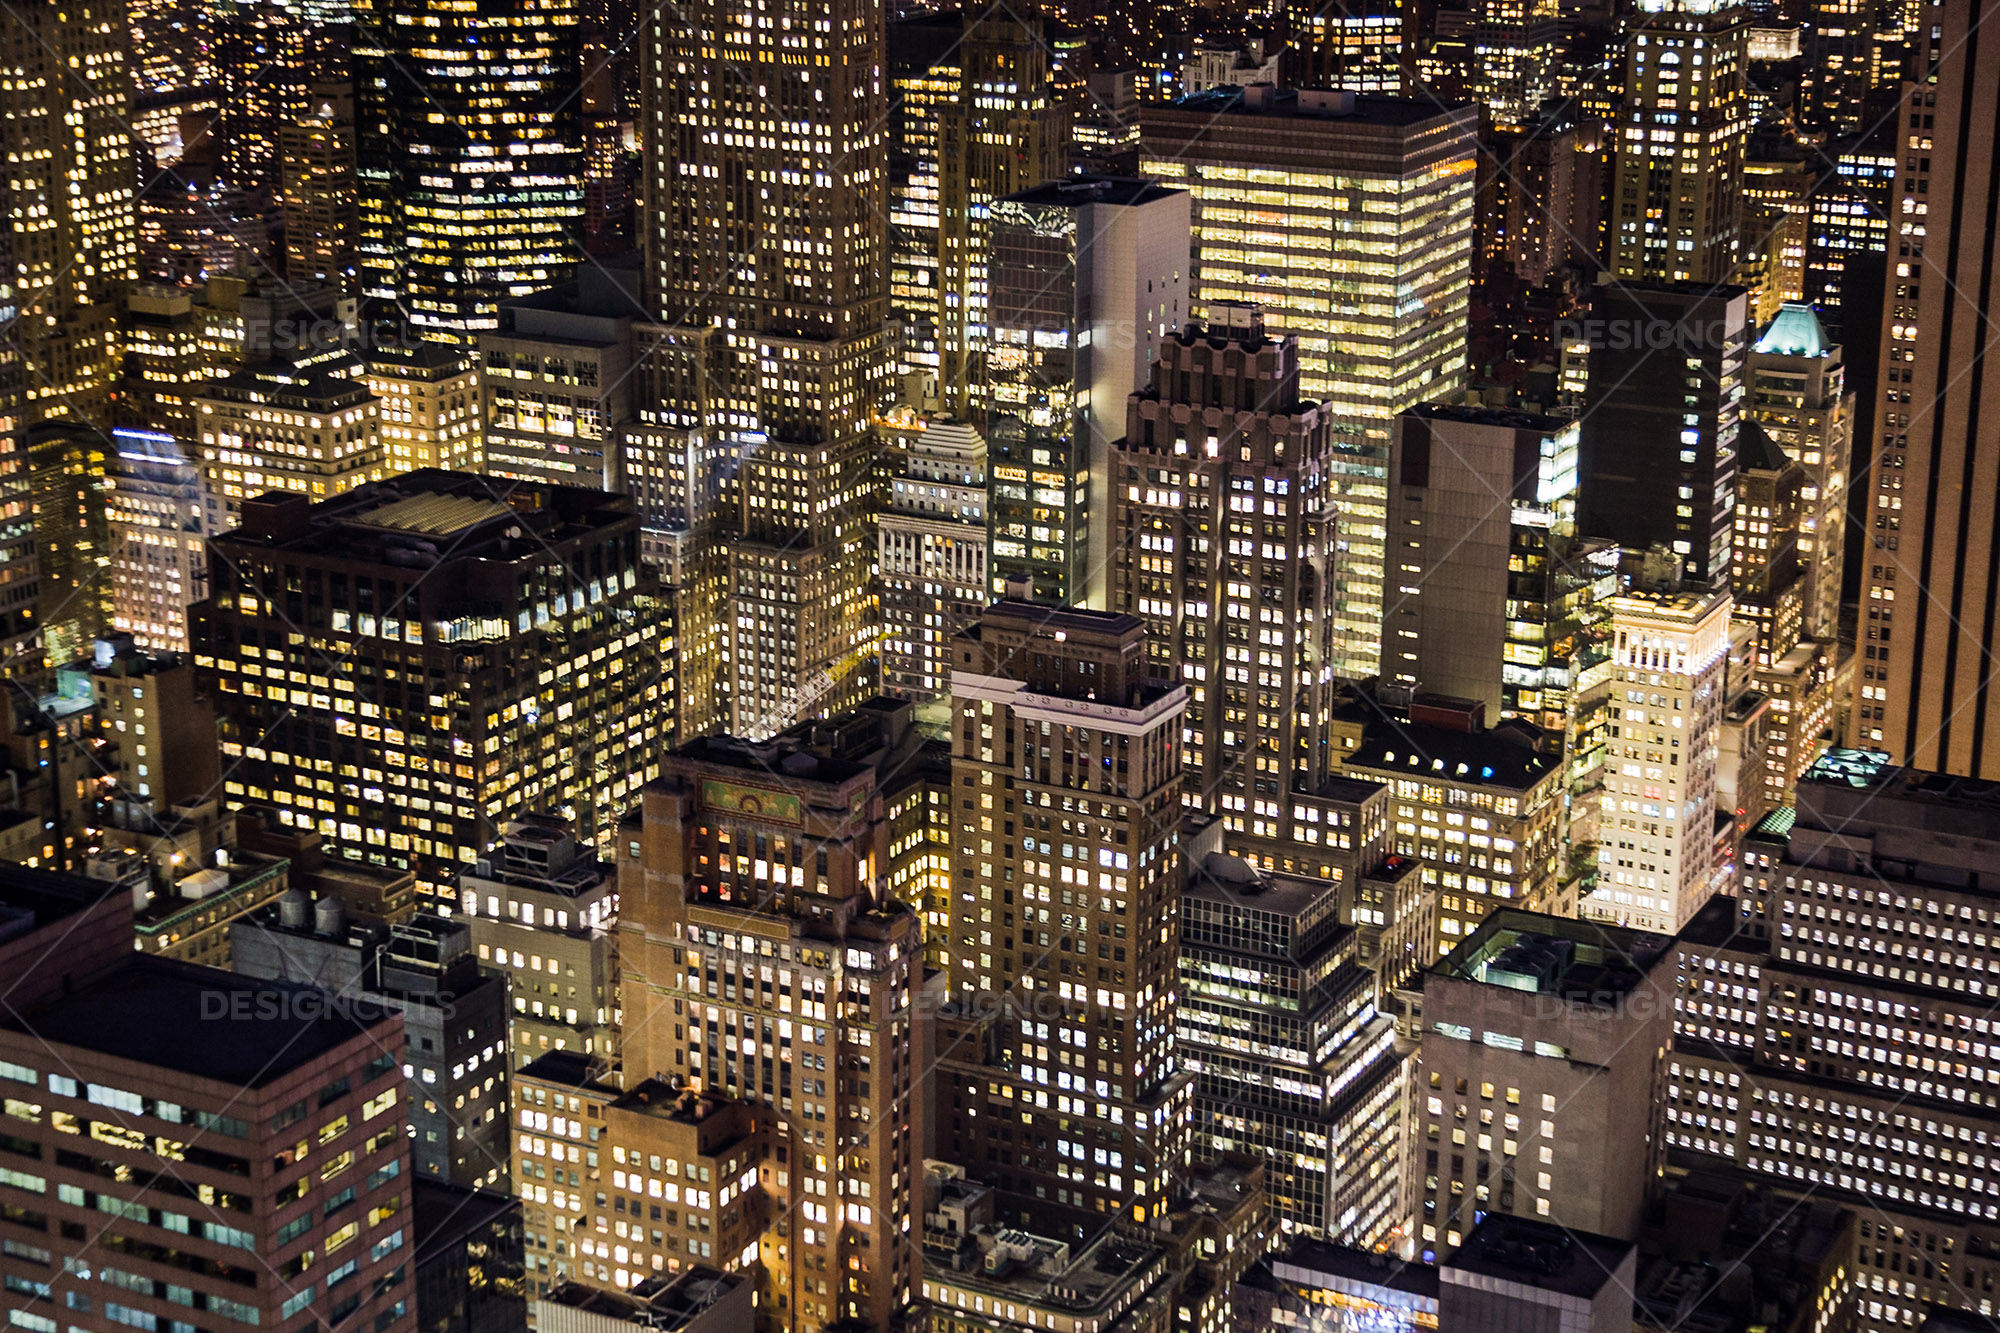 Aerial View Of New York City Skyscrapers Lit Up At Night 4